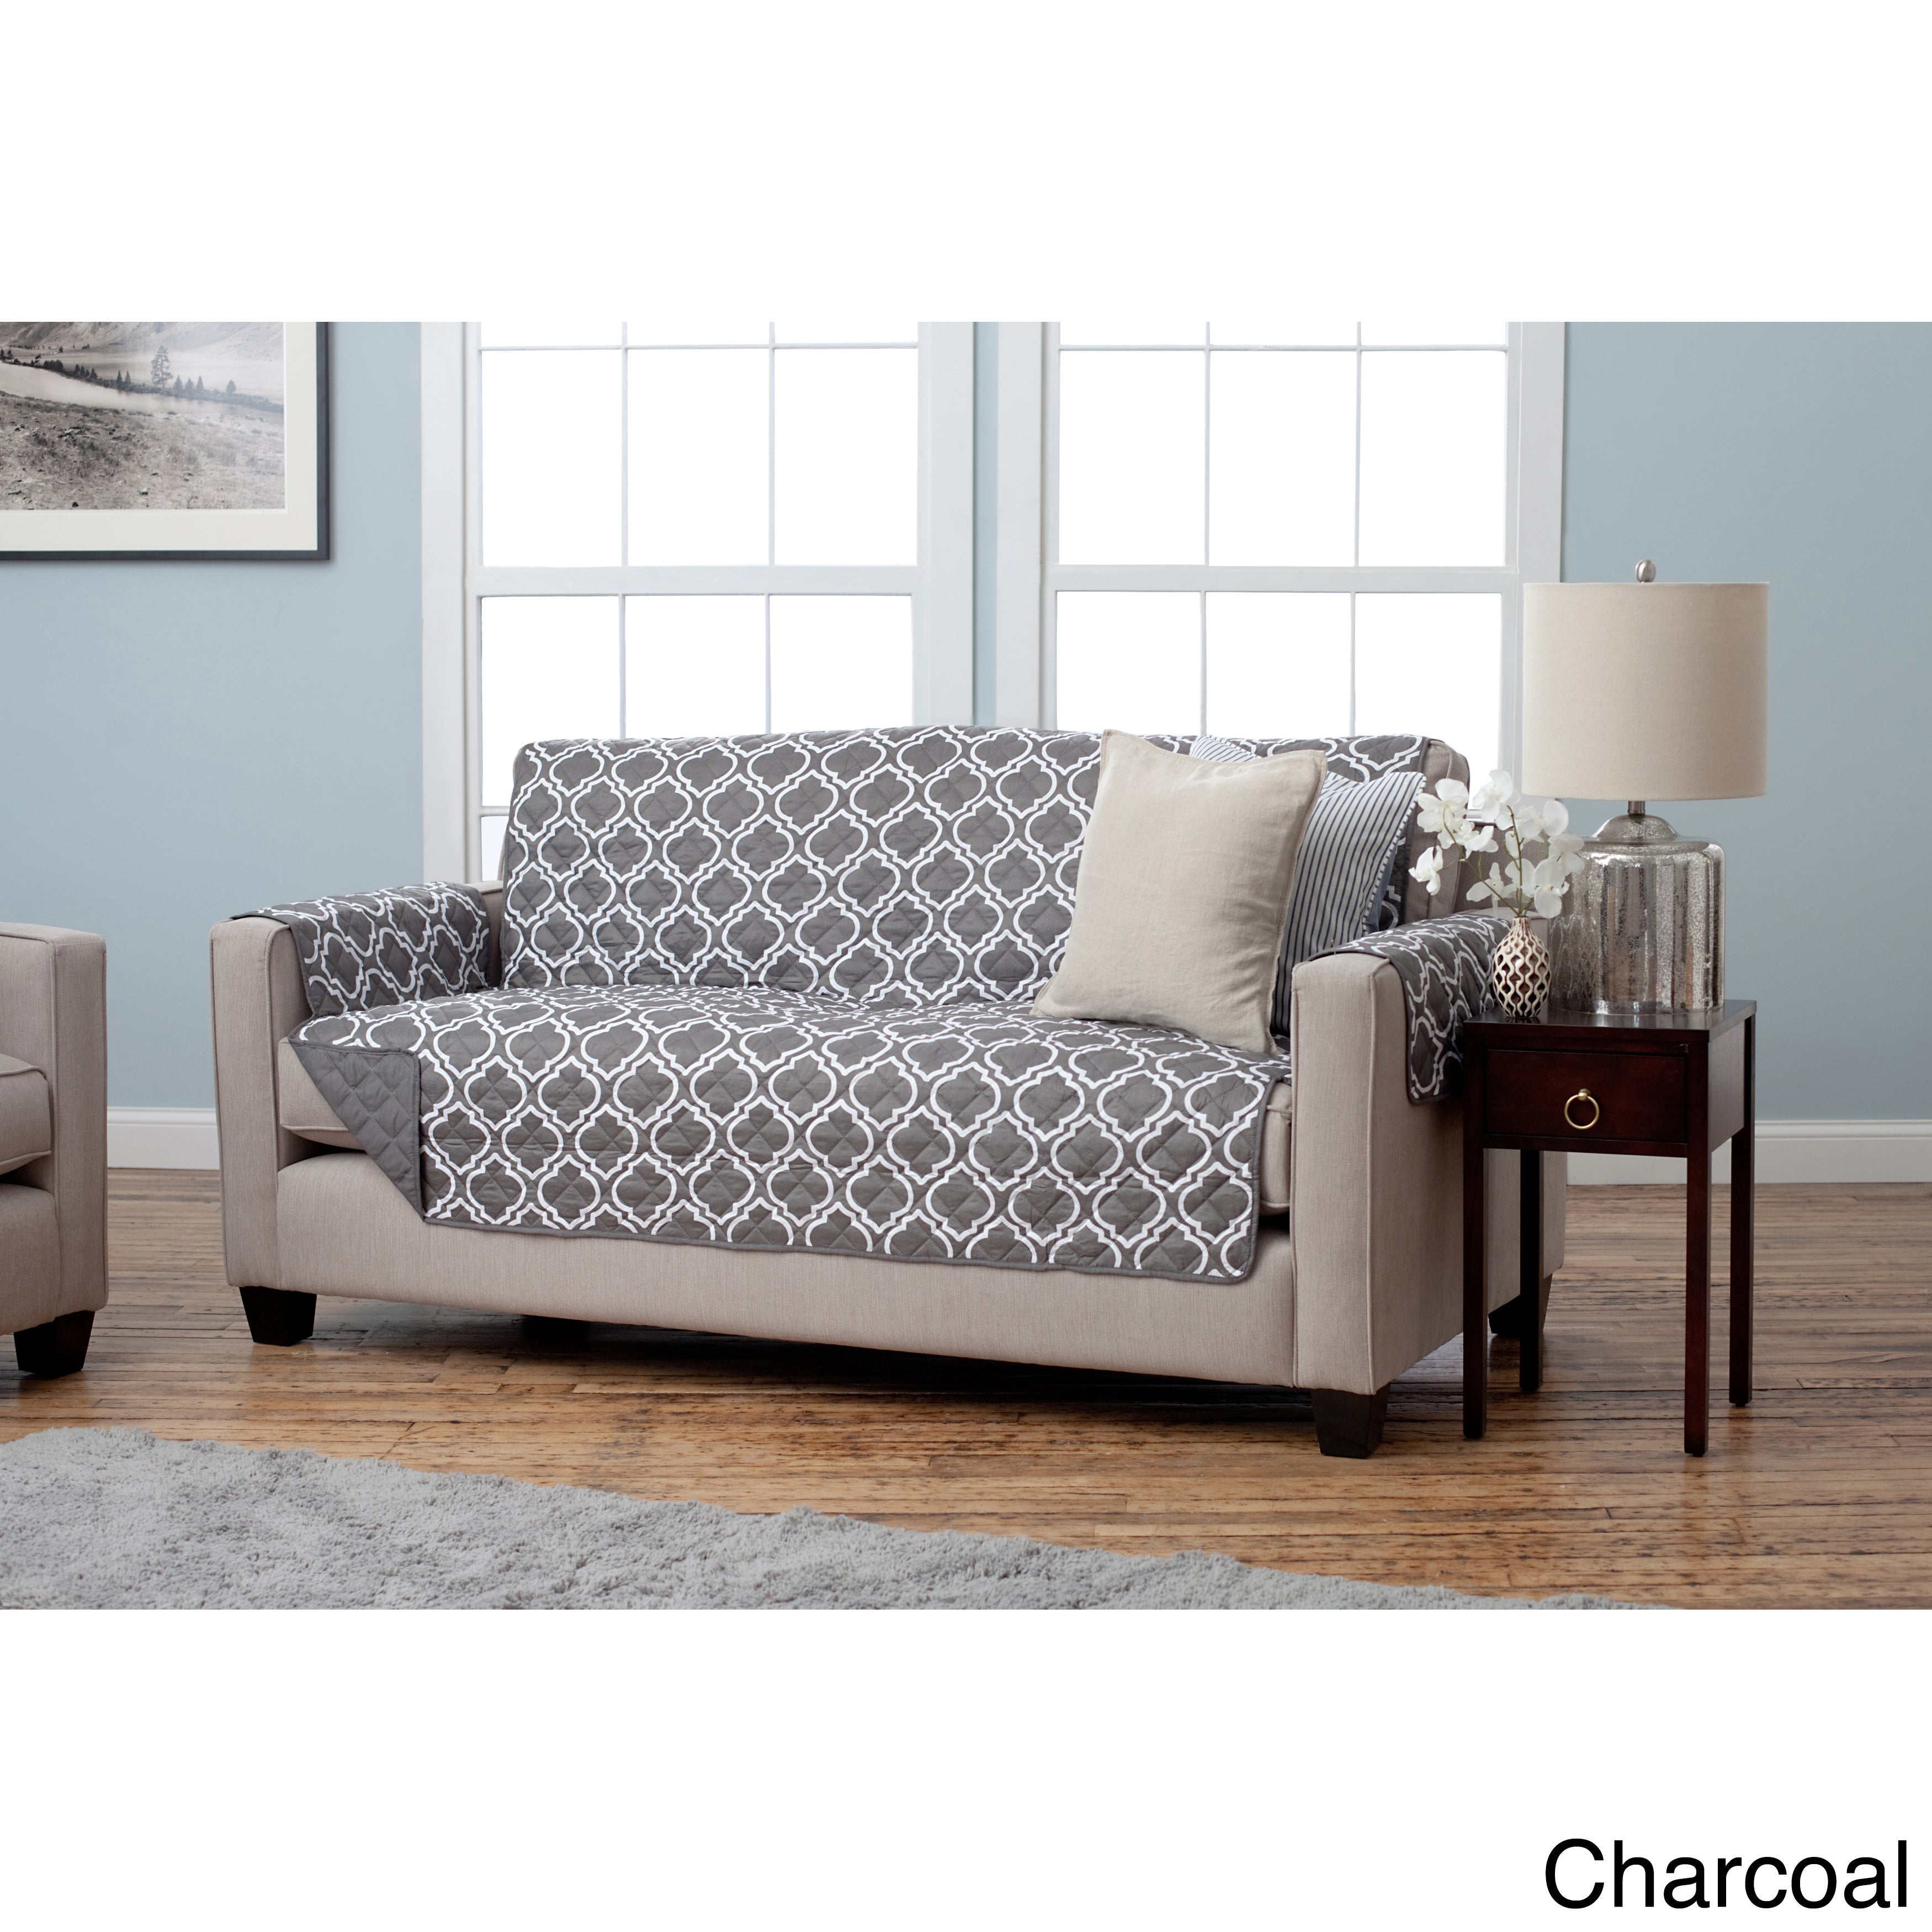 Sofa Stain Protection Insurance Thecreativescientist Com ~ Stain Protection For Fabric Sofa